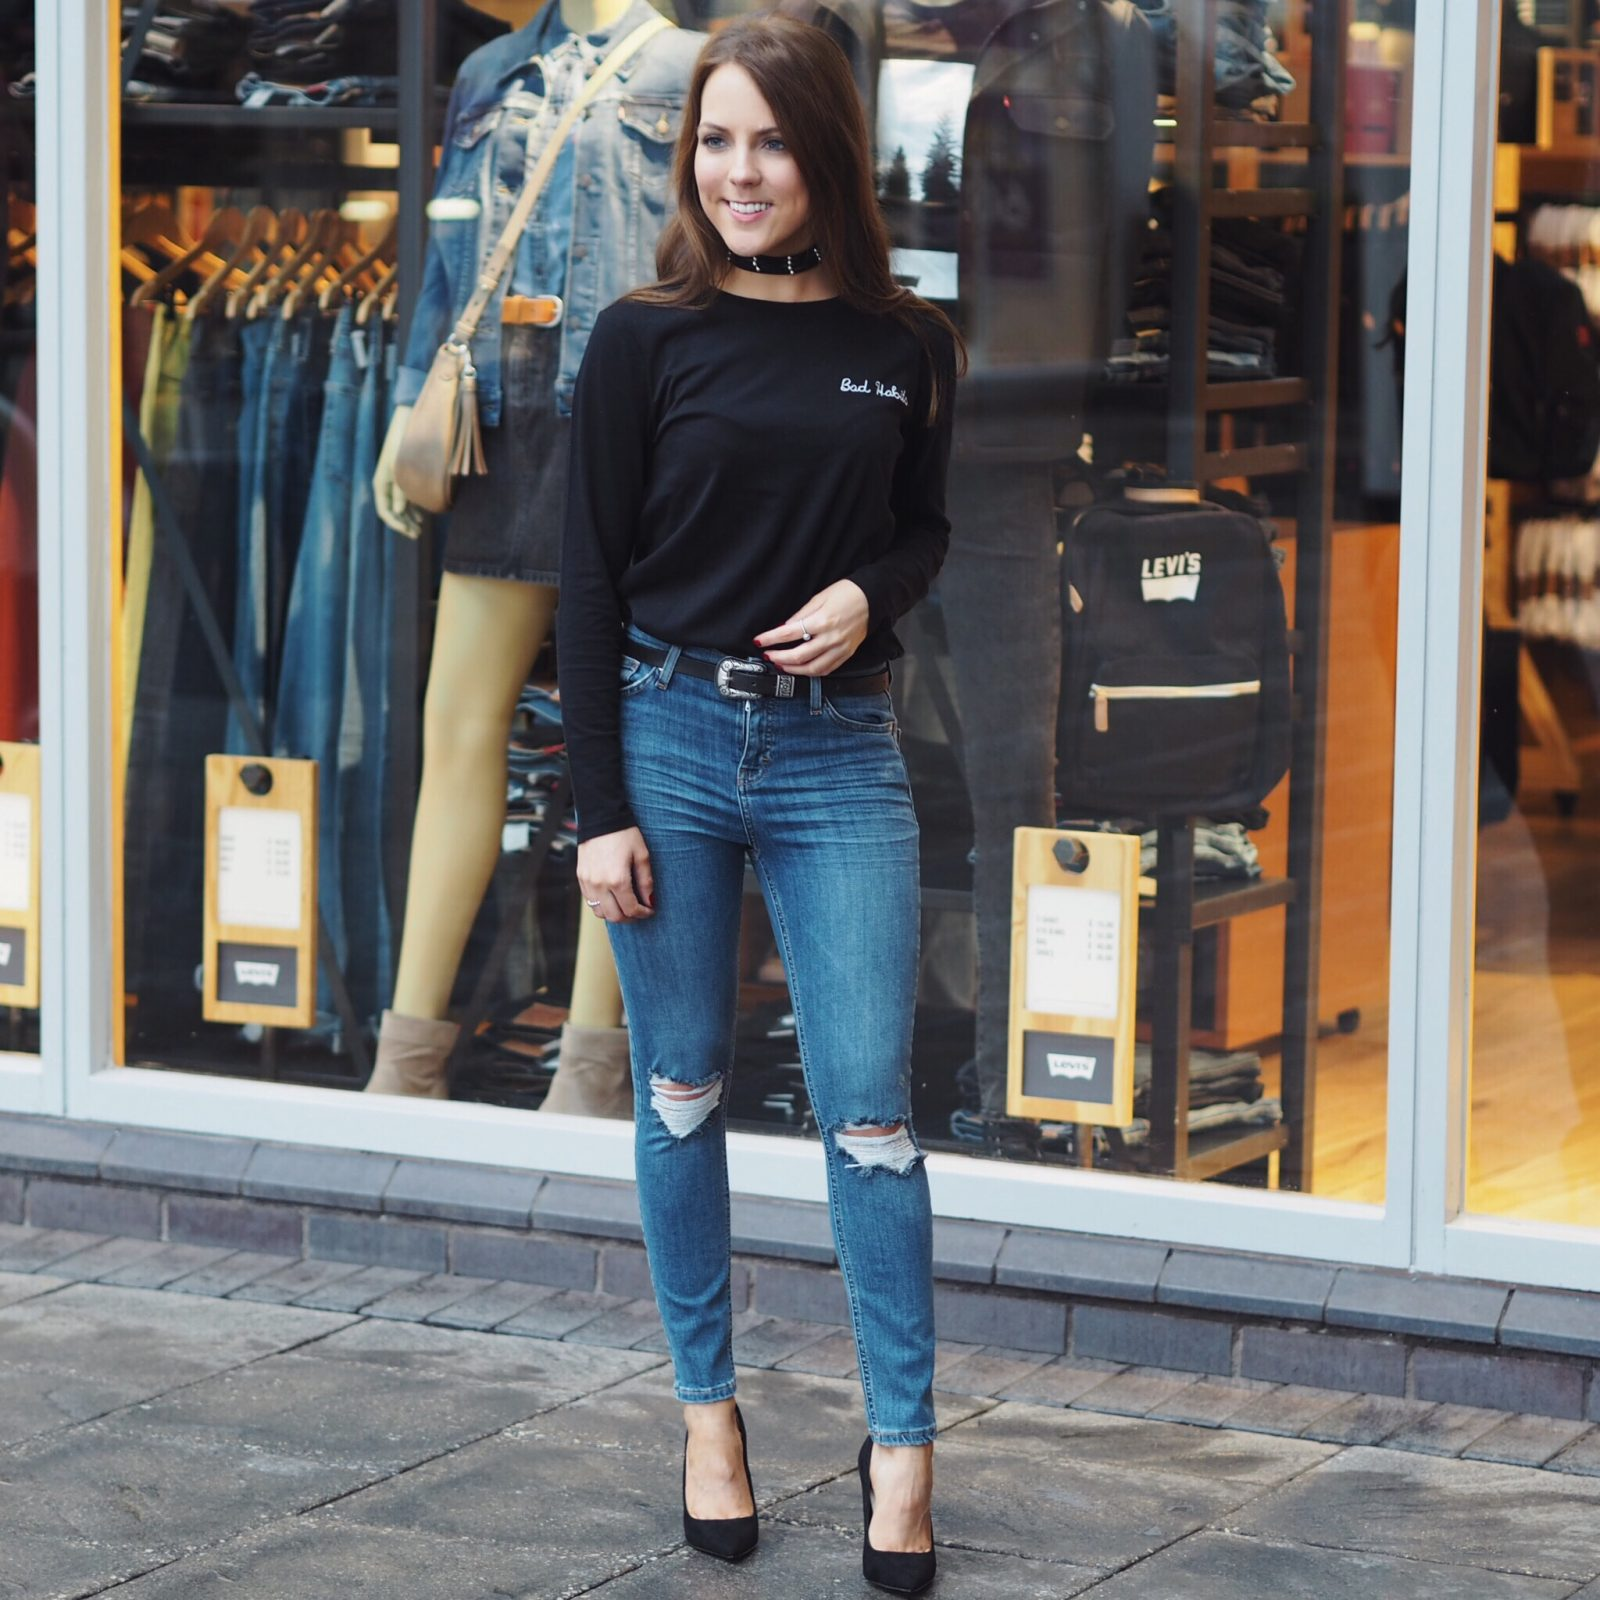 Topshop Jamie jeans, Bad Habits top and ASOS court shoes